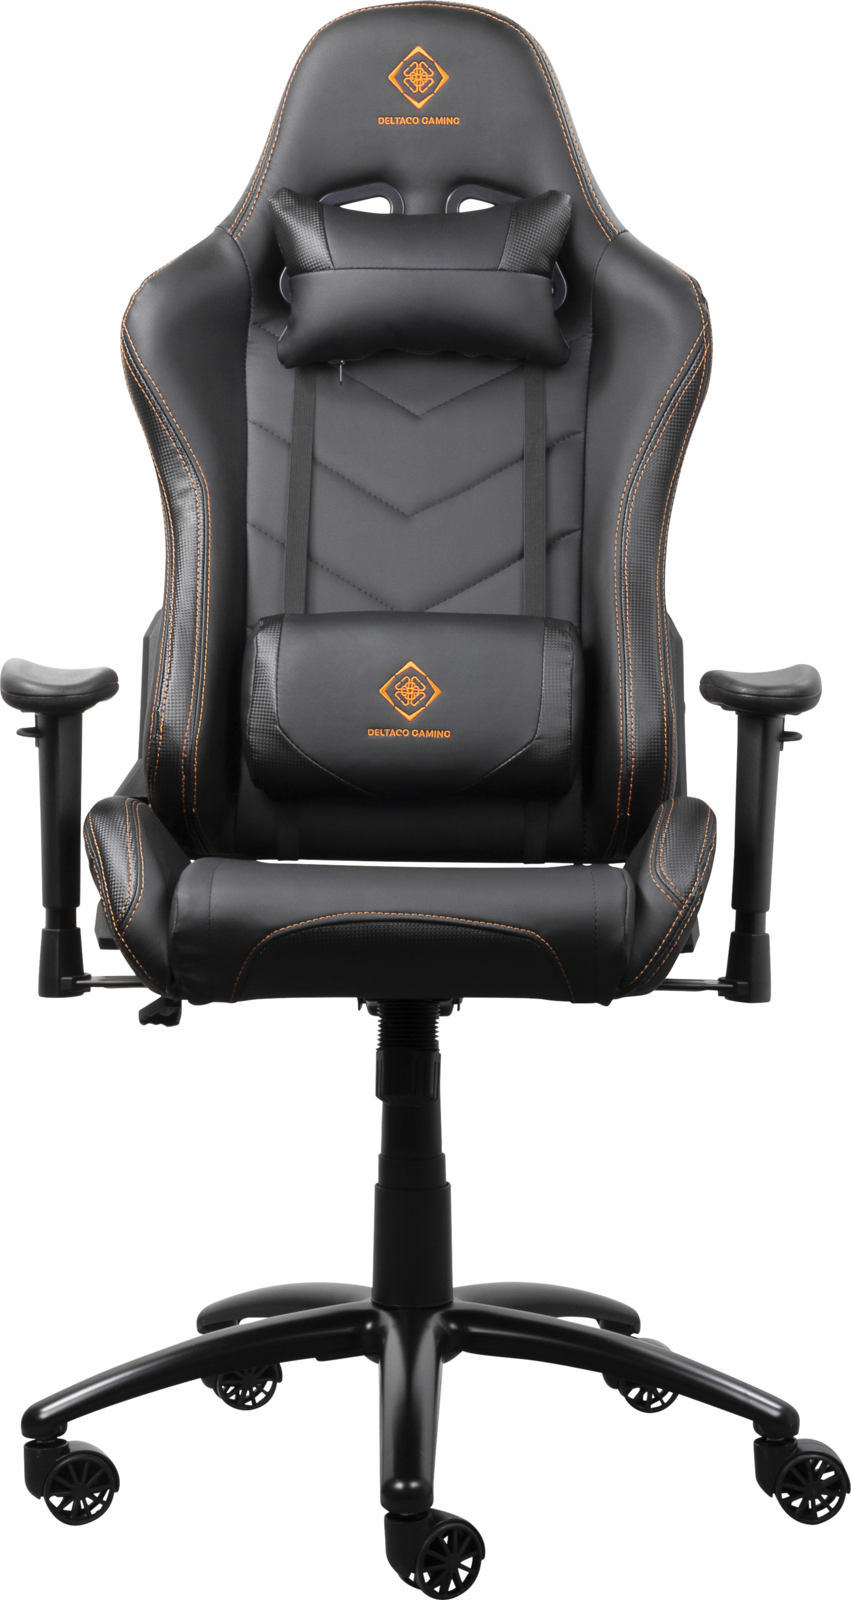 Deltaco Gaming Chair Leatherette V4809-5